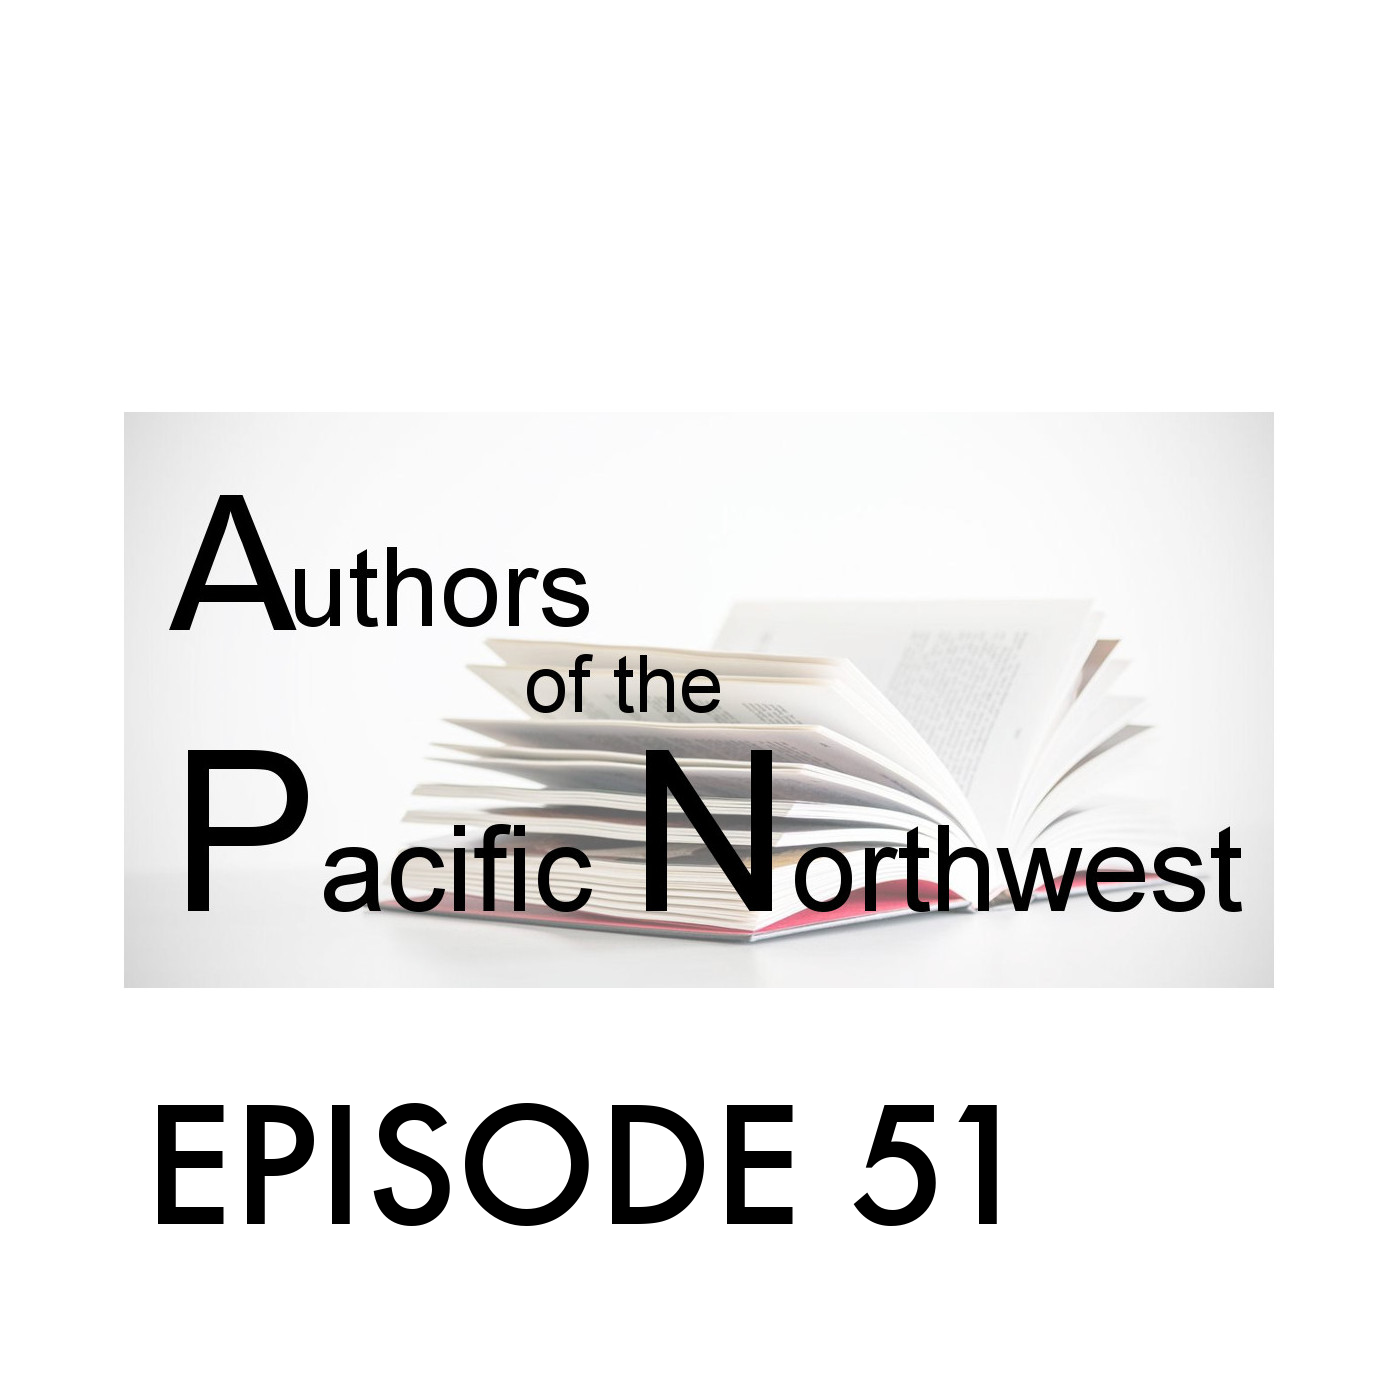 Episode 51: Mikko Azul; Puget Sound Epic High Fantasy Author from Not a Pipe Publishing